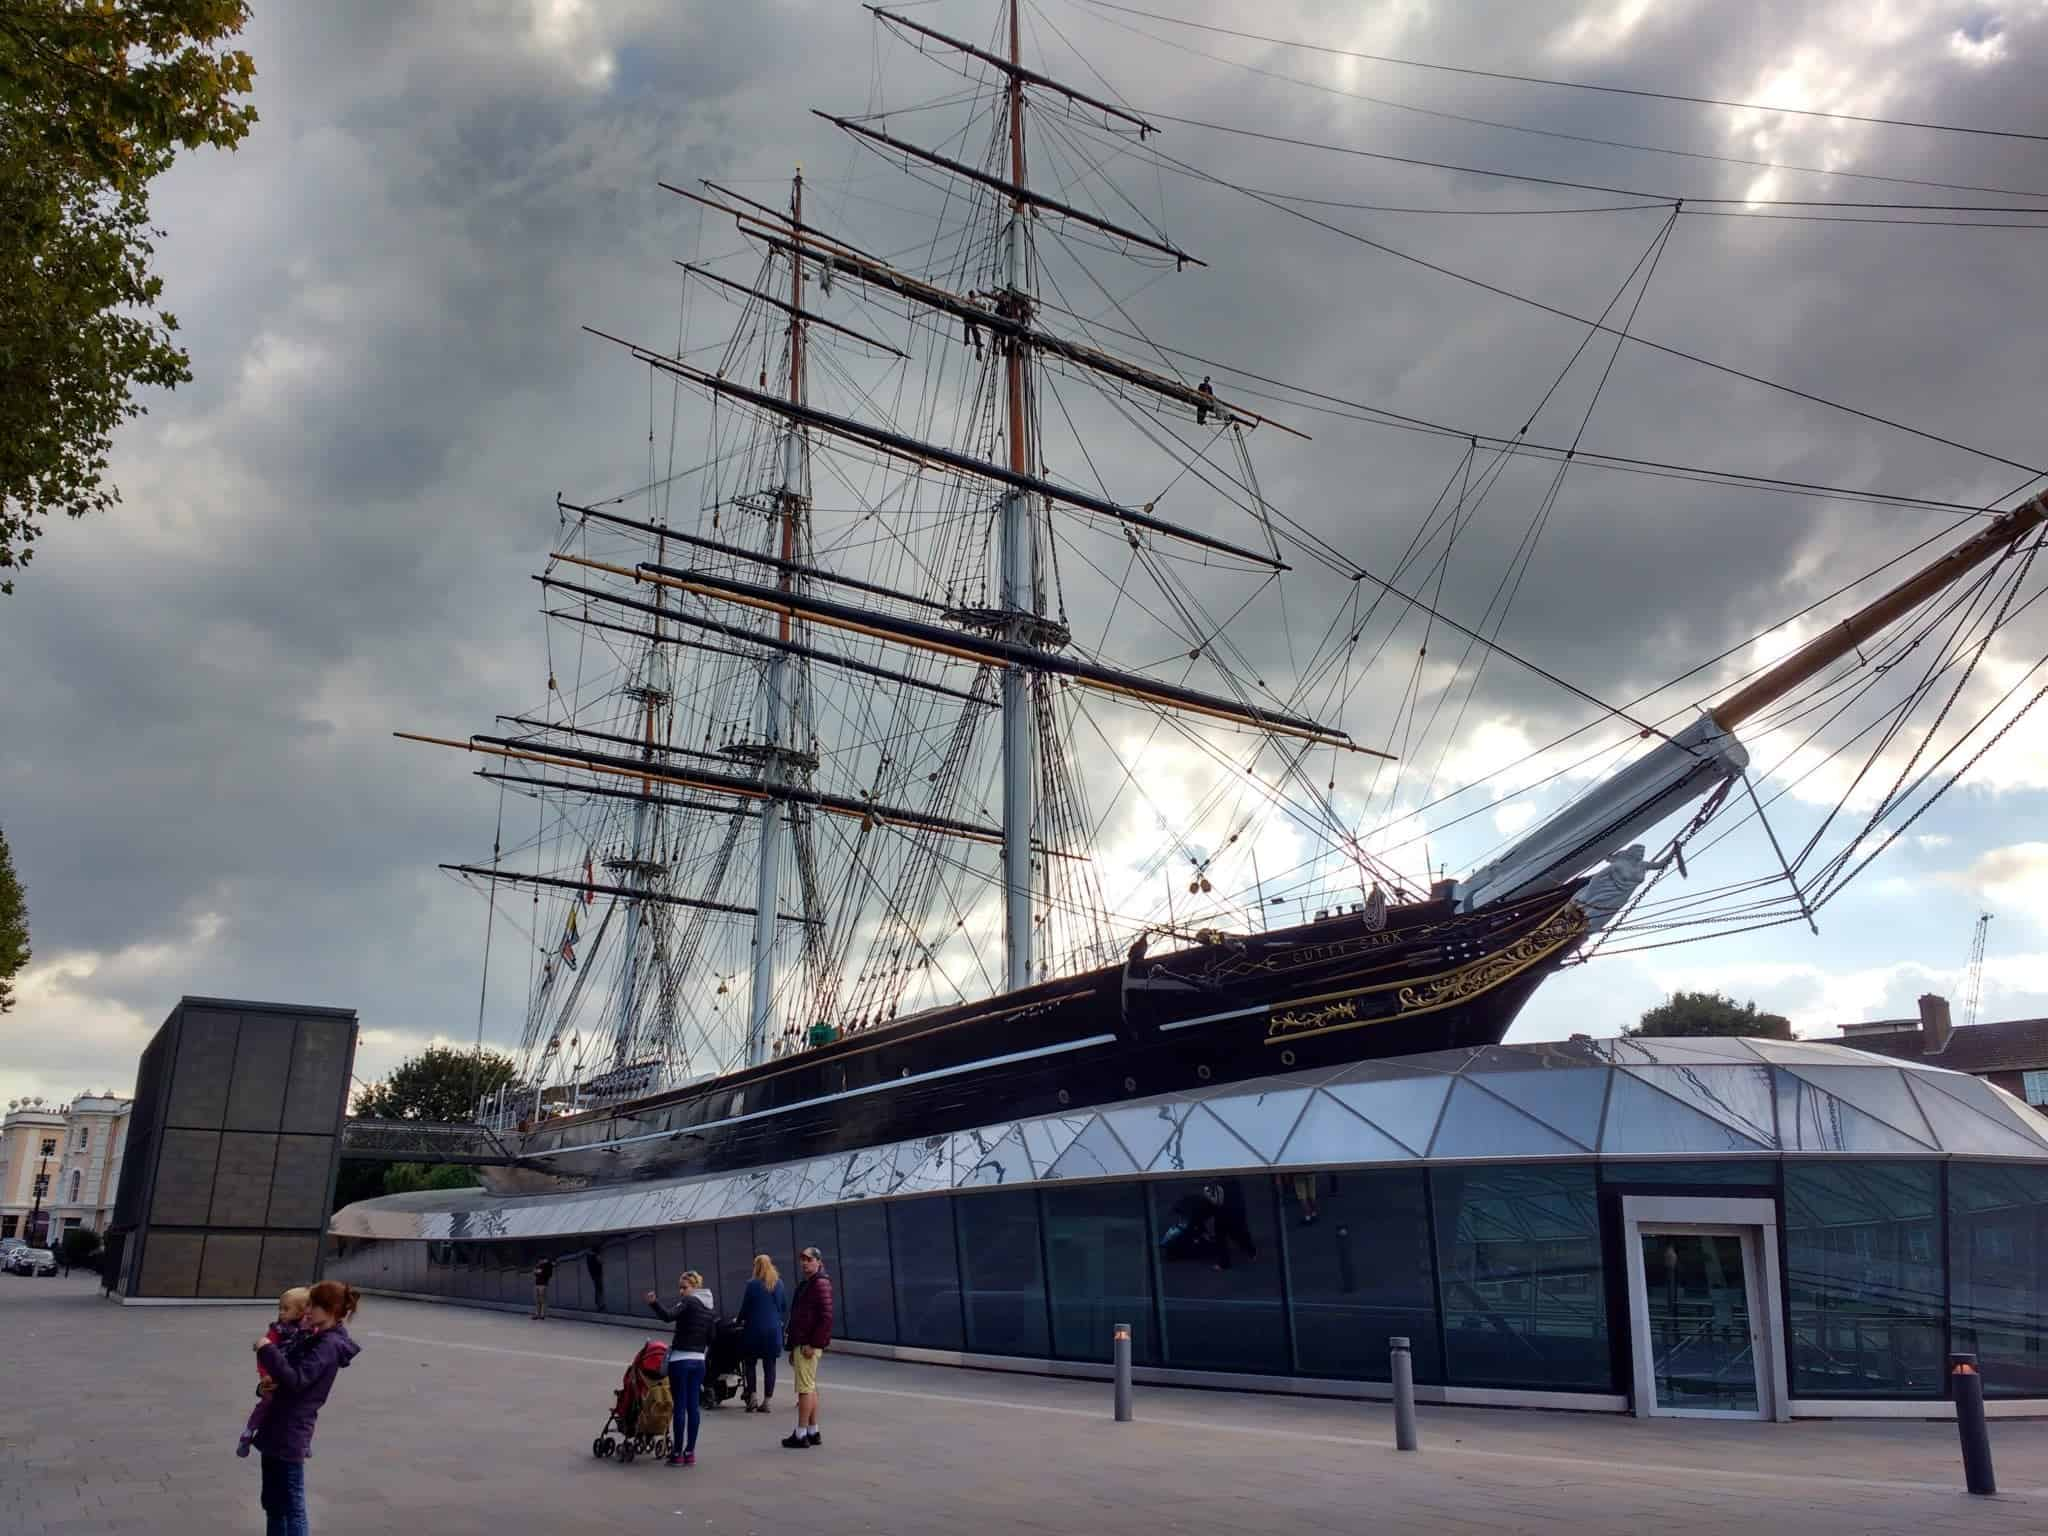 the awesome Cutty Sark ship on the Greenwich pier